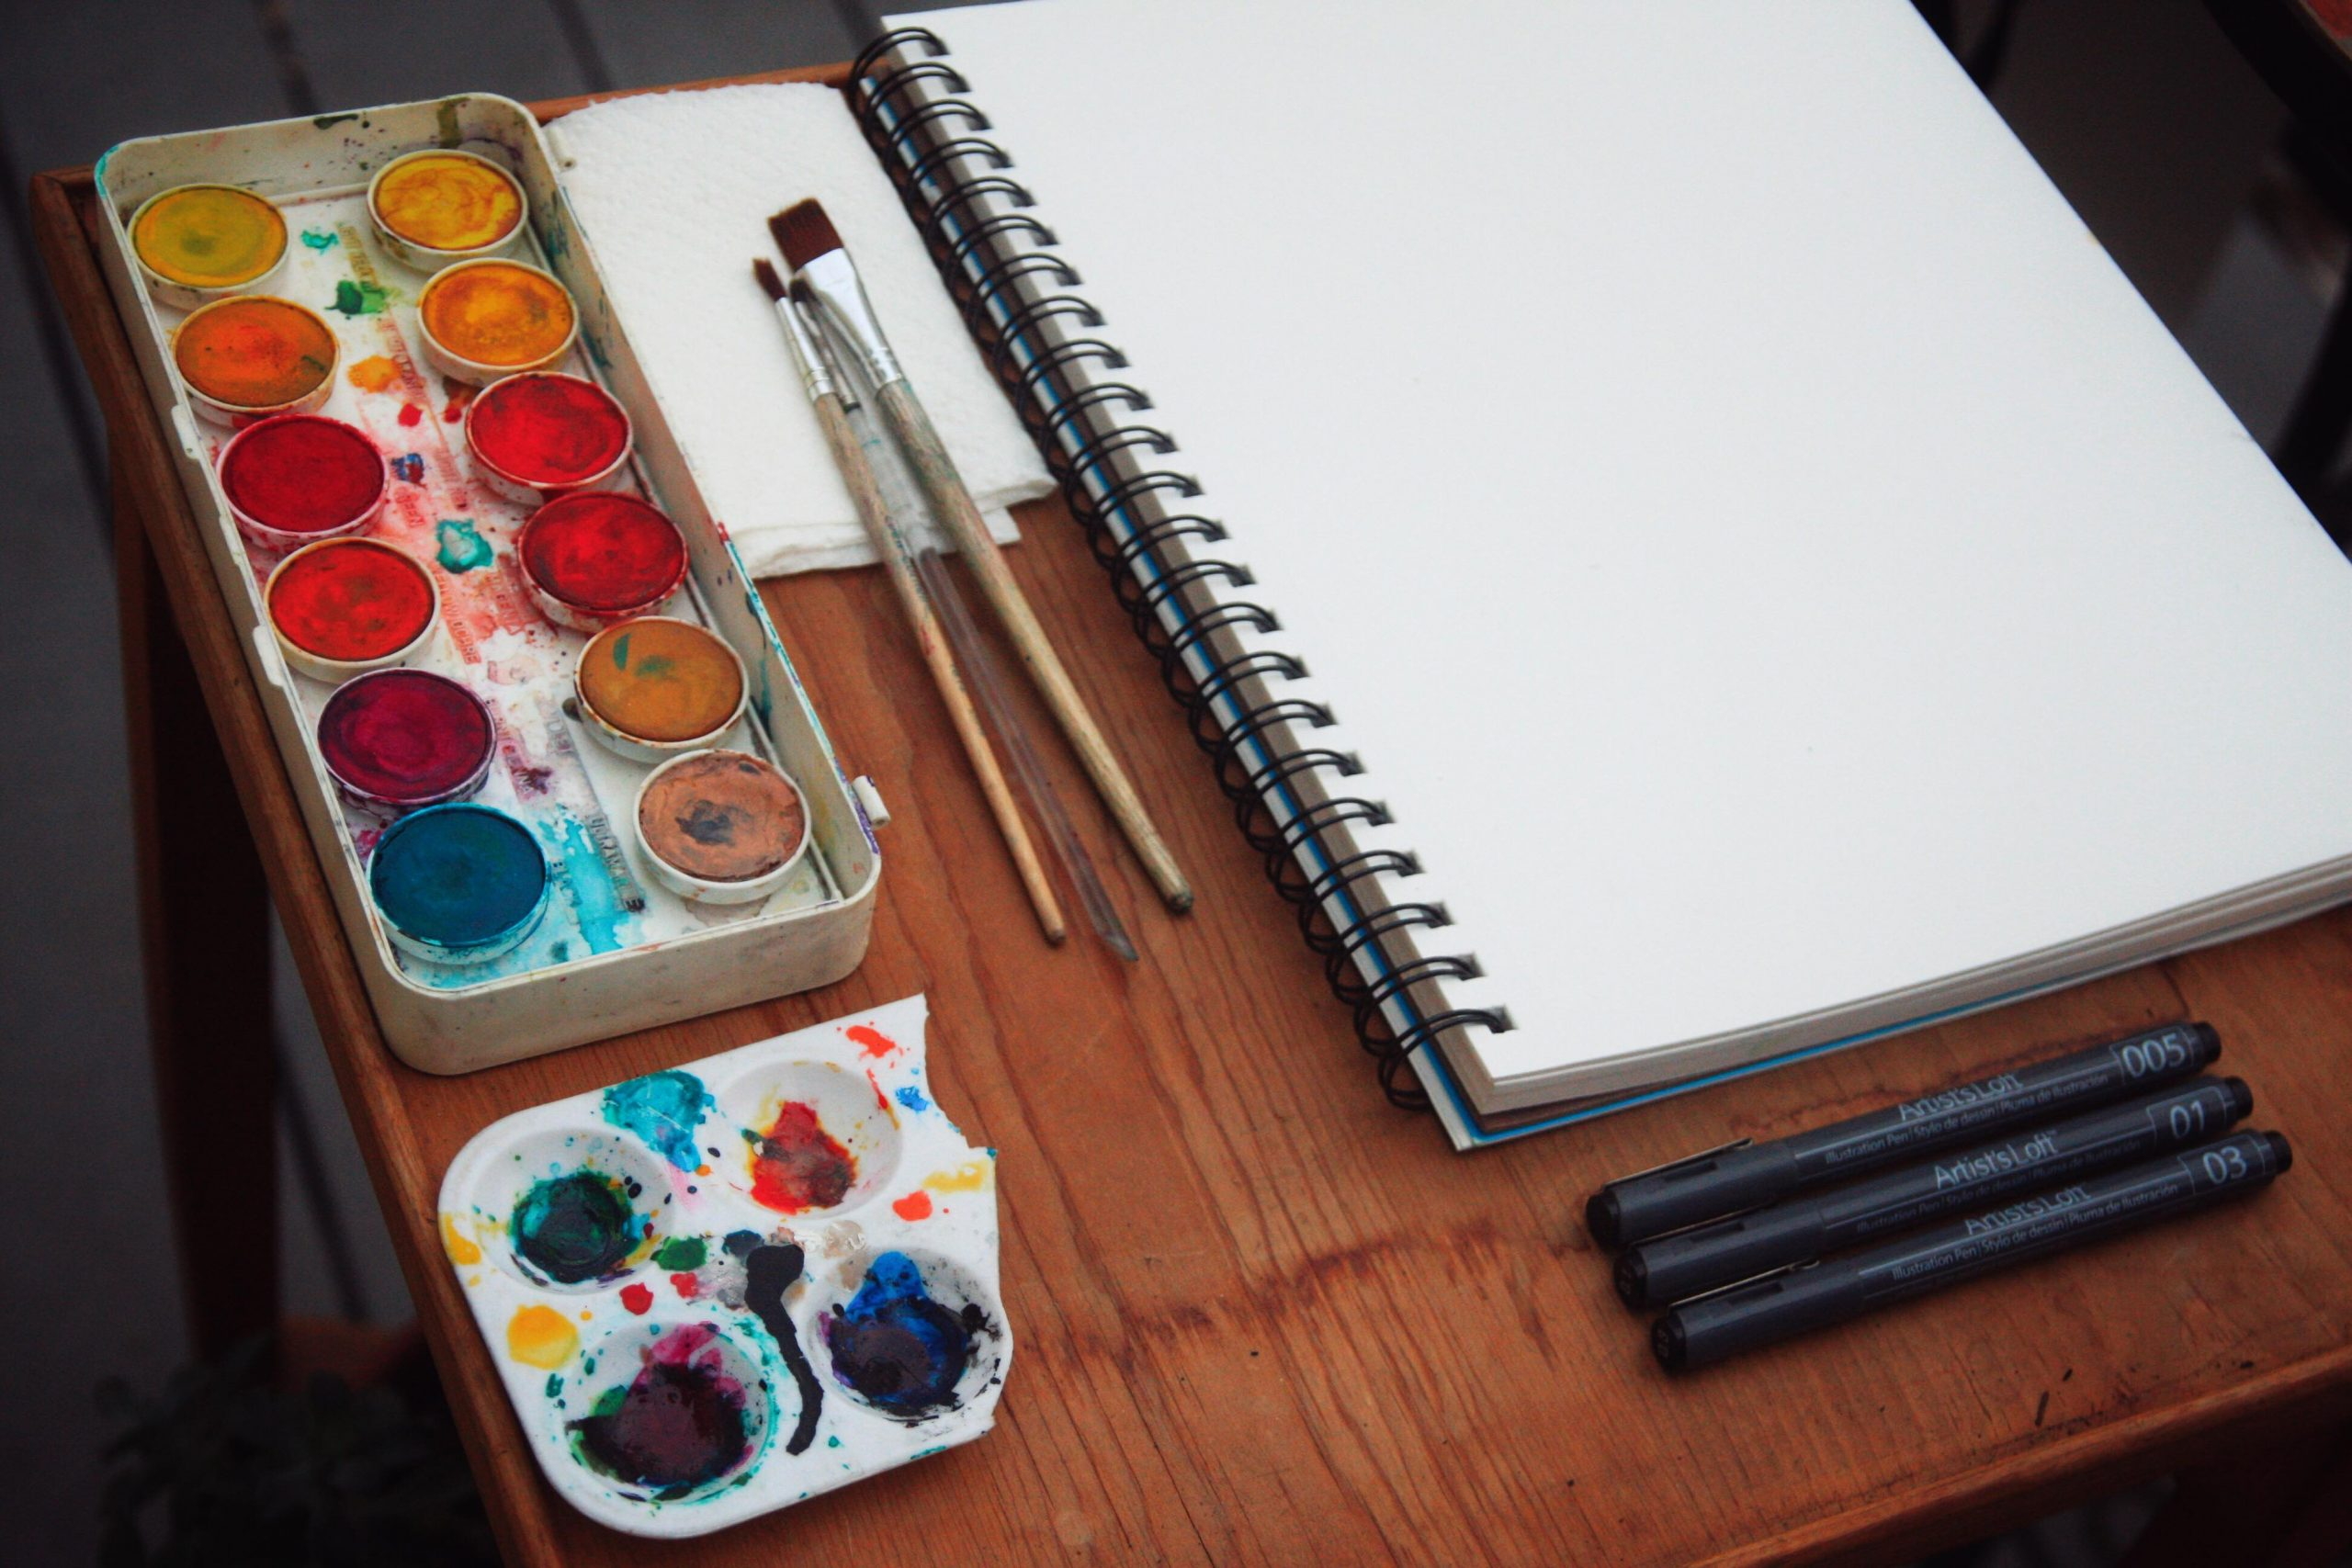 watercolor paint palet and notebook